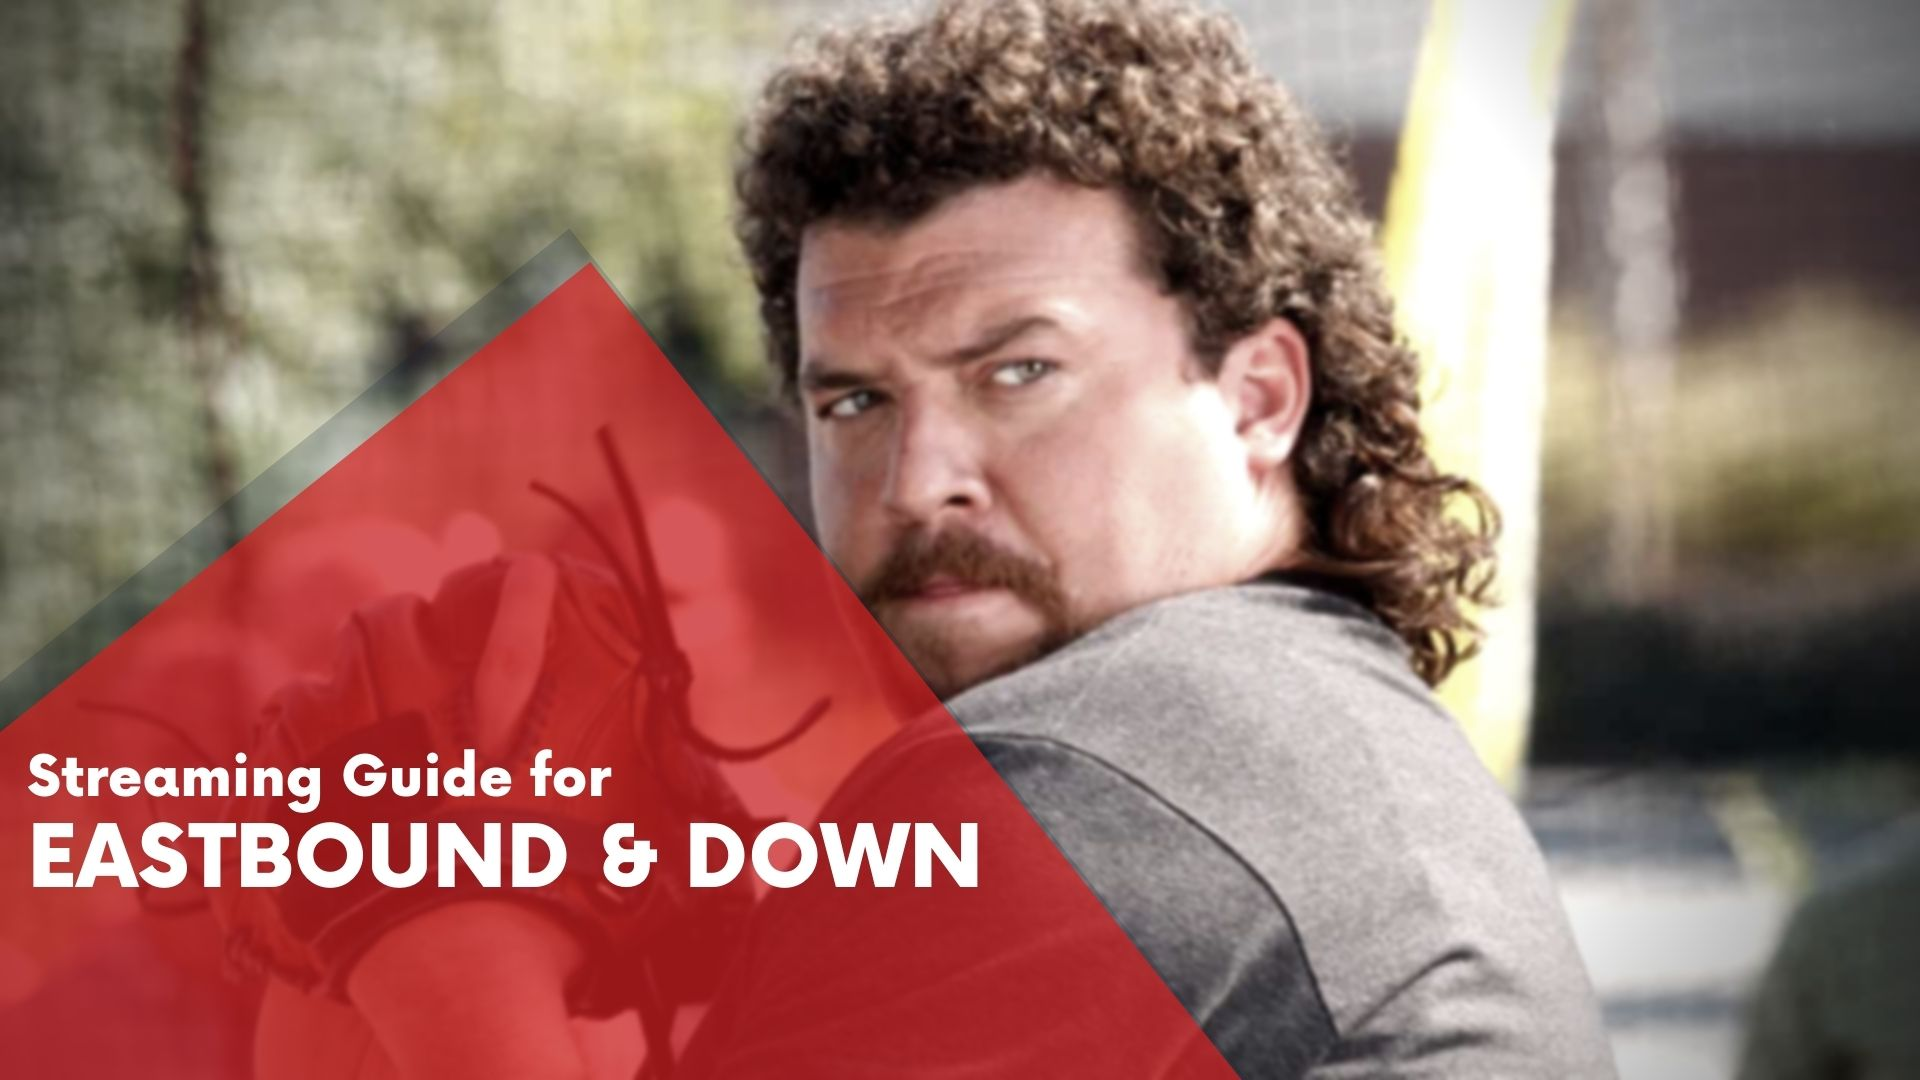 Answering if Eastbound Down is available on Hulu